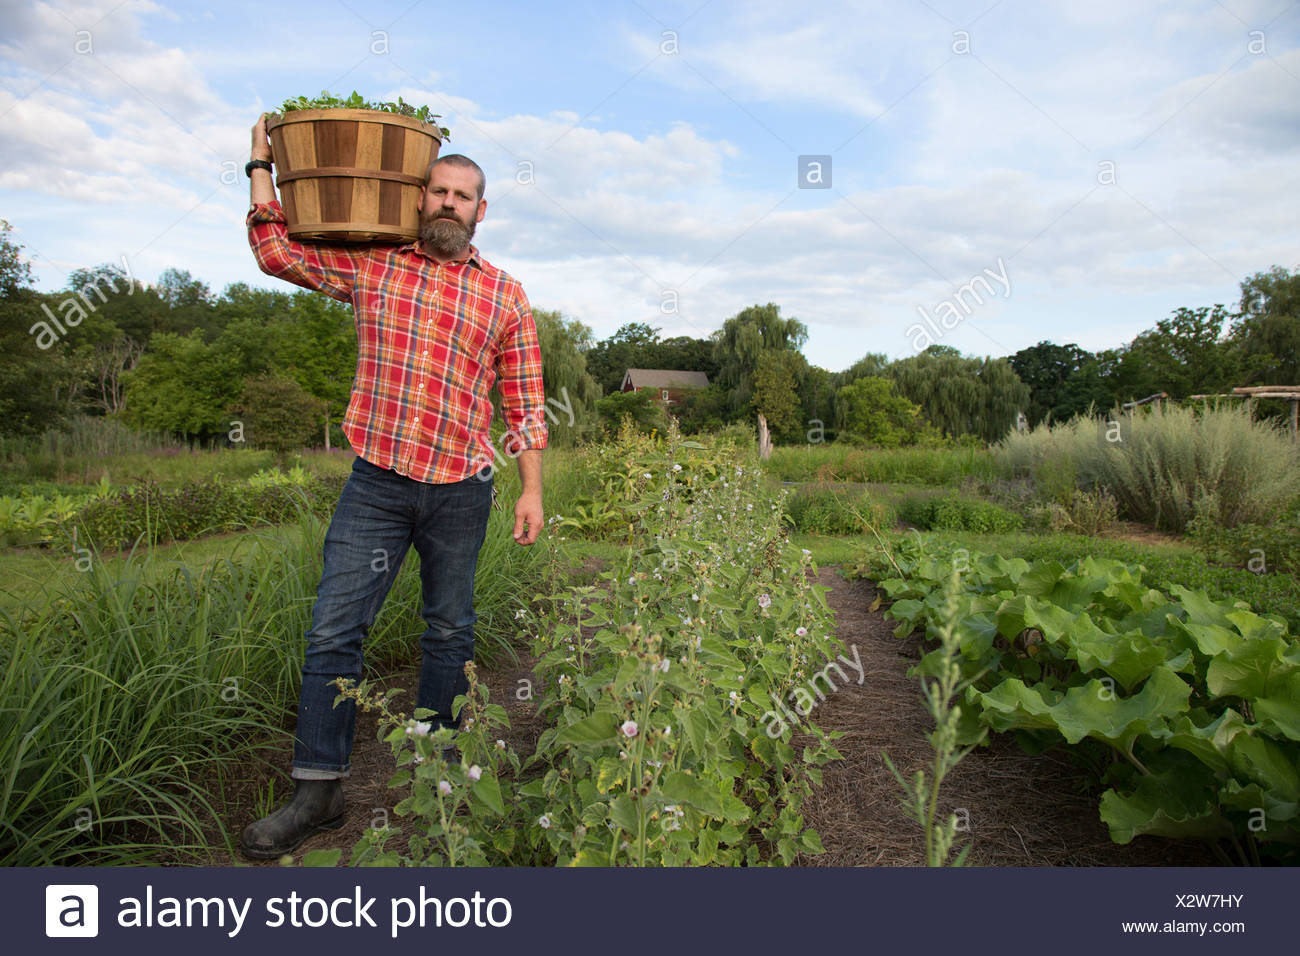 Mature man holding basket of leaves on herb farm - Stock Image